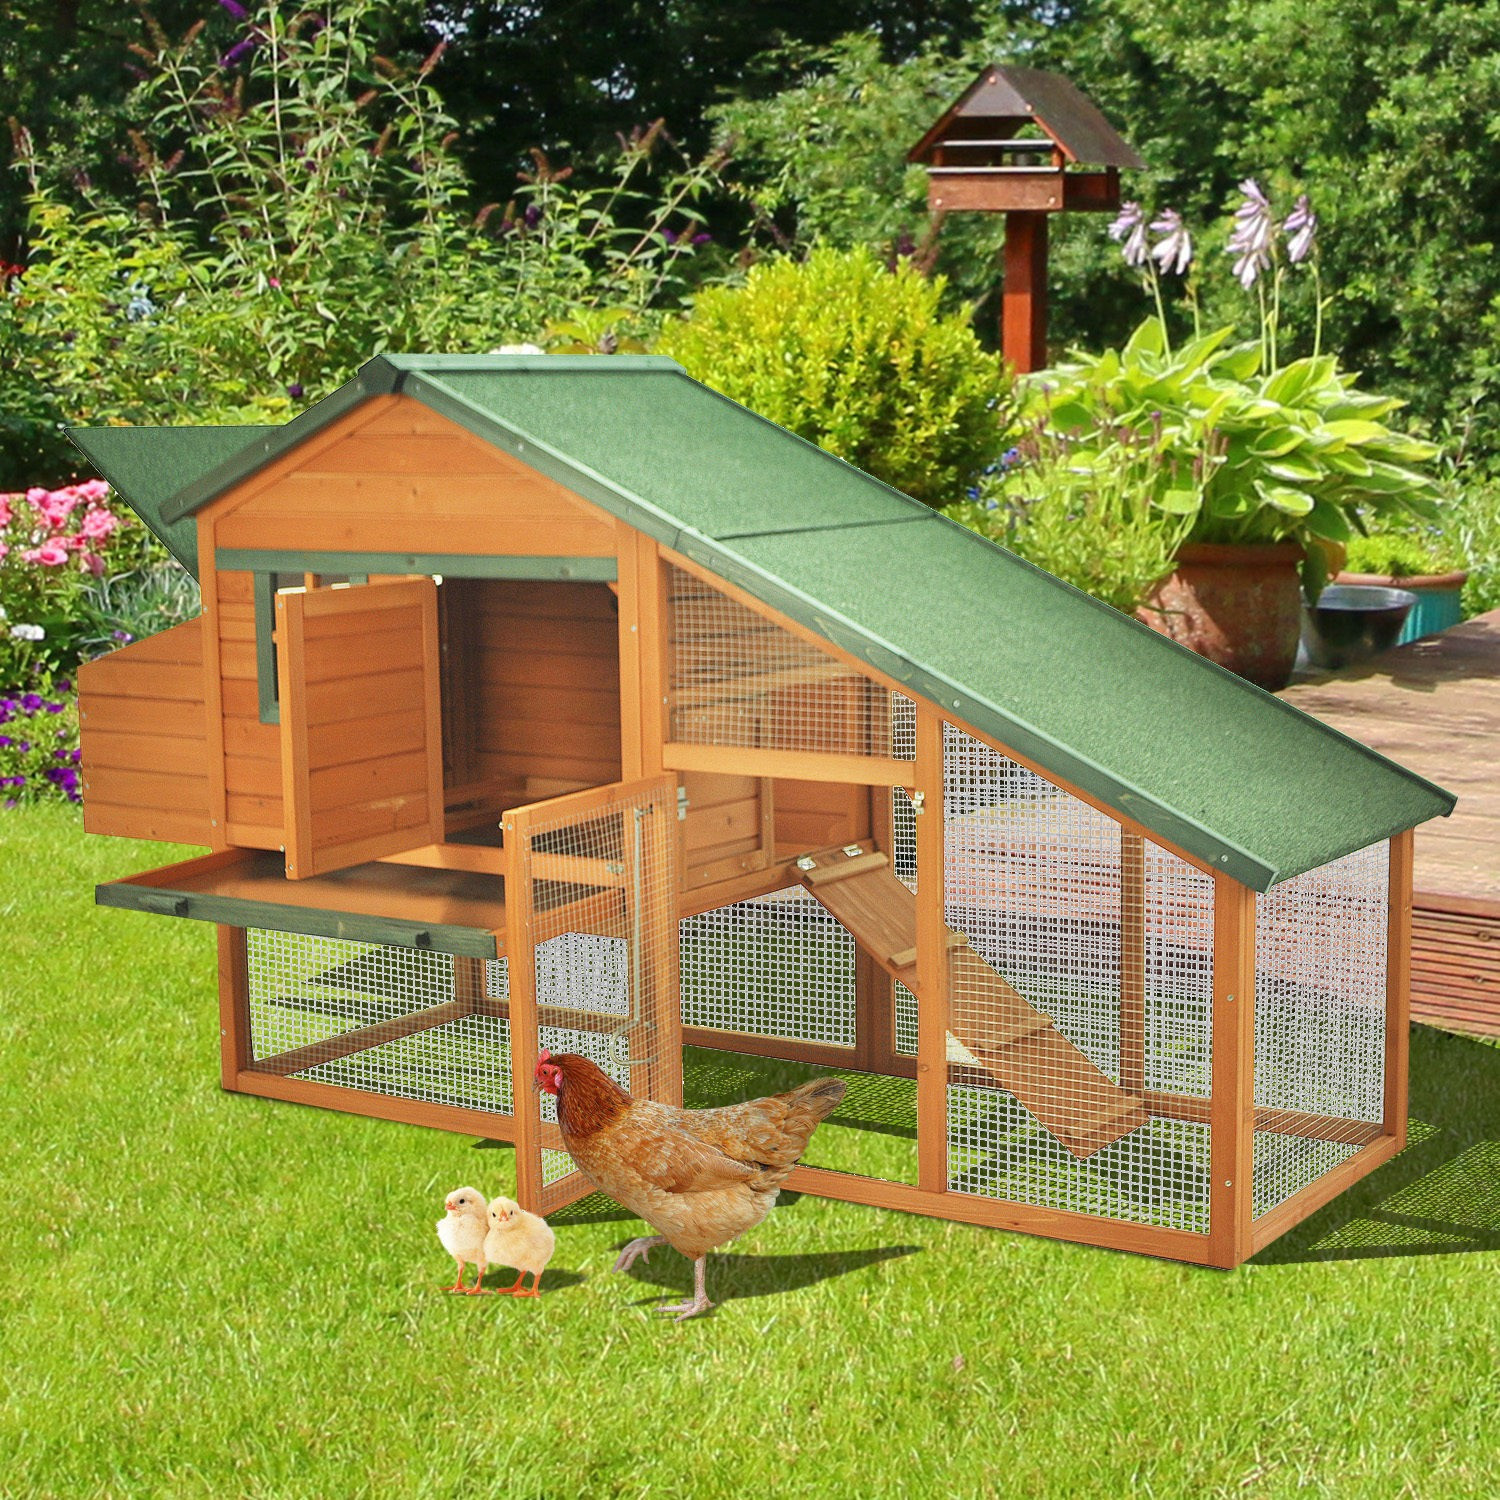 Best ideas about Backyard Chicken Coop . Save or Pin Pawhut Deluxe Backyard Wooden Chicken Coop w Run Now.